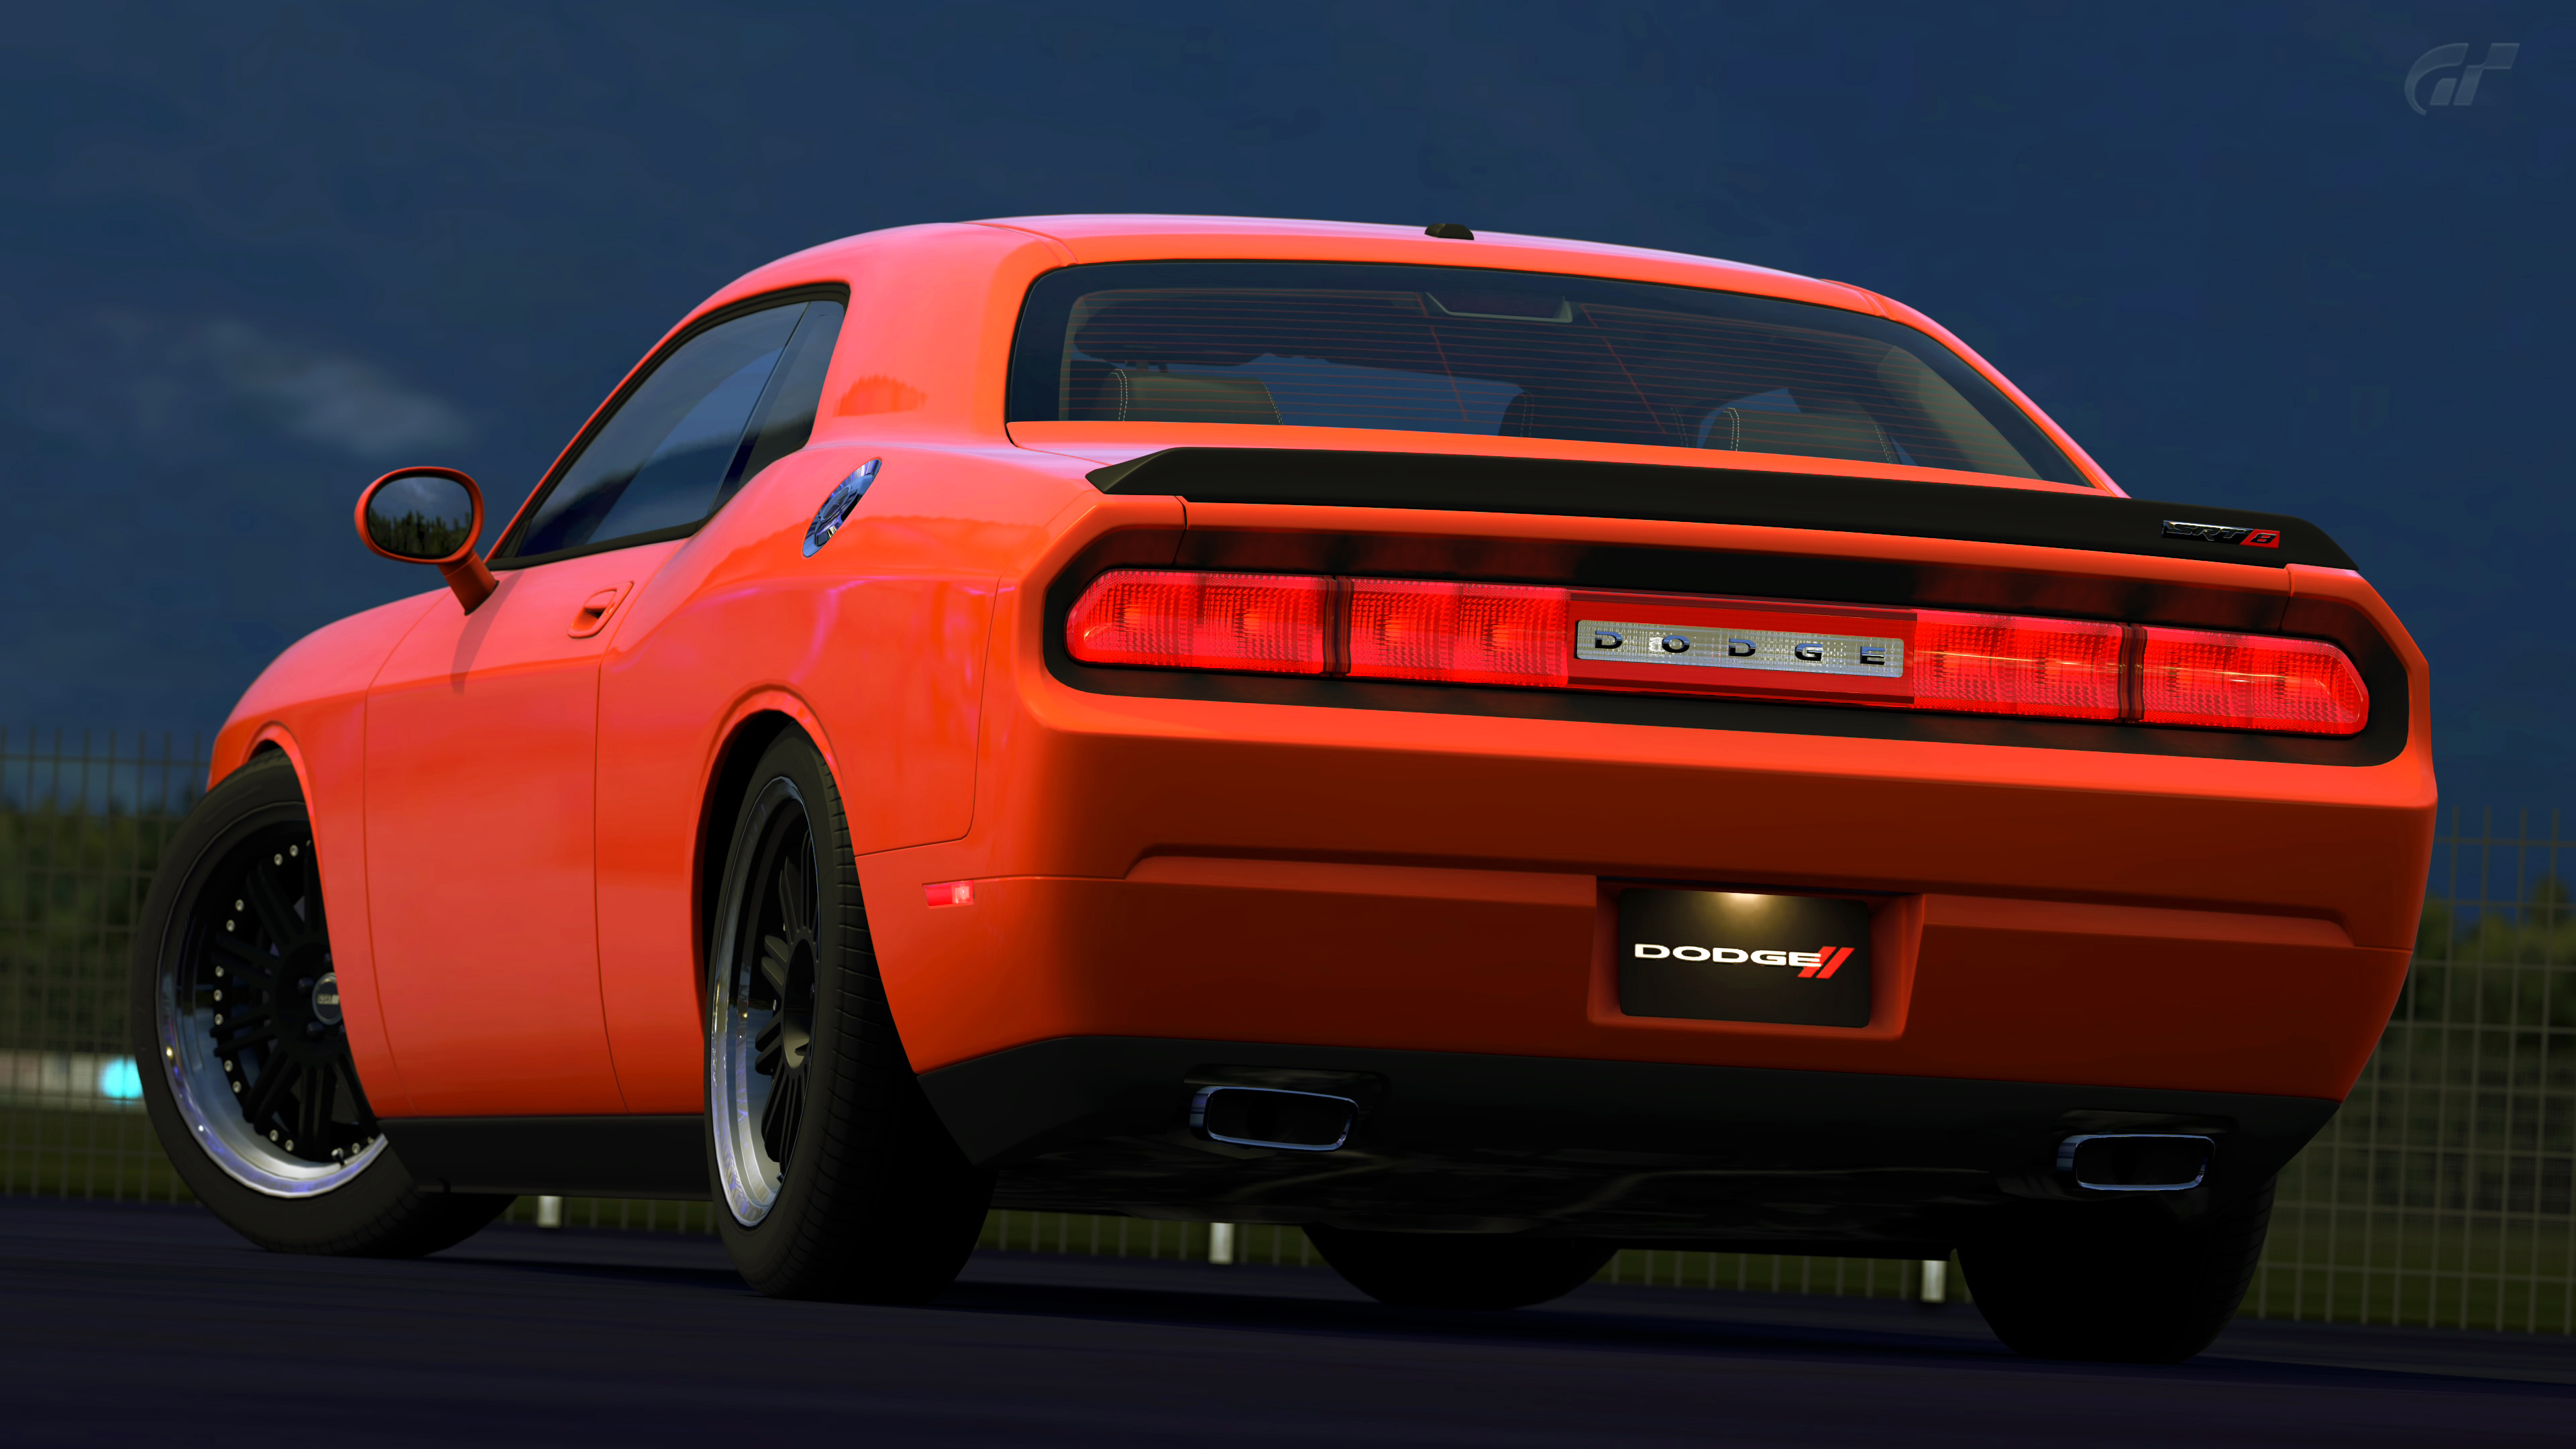 2008 Dodge Challenger SRT8 (Gran Turismo 5) by Vertualissimo